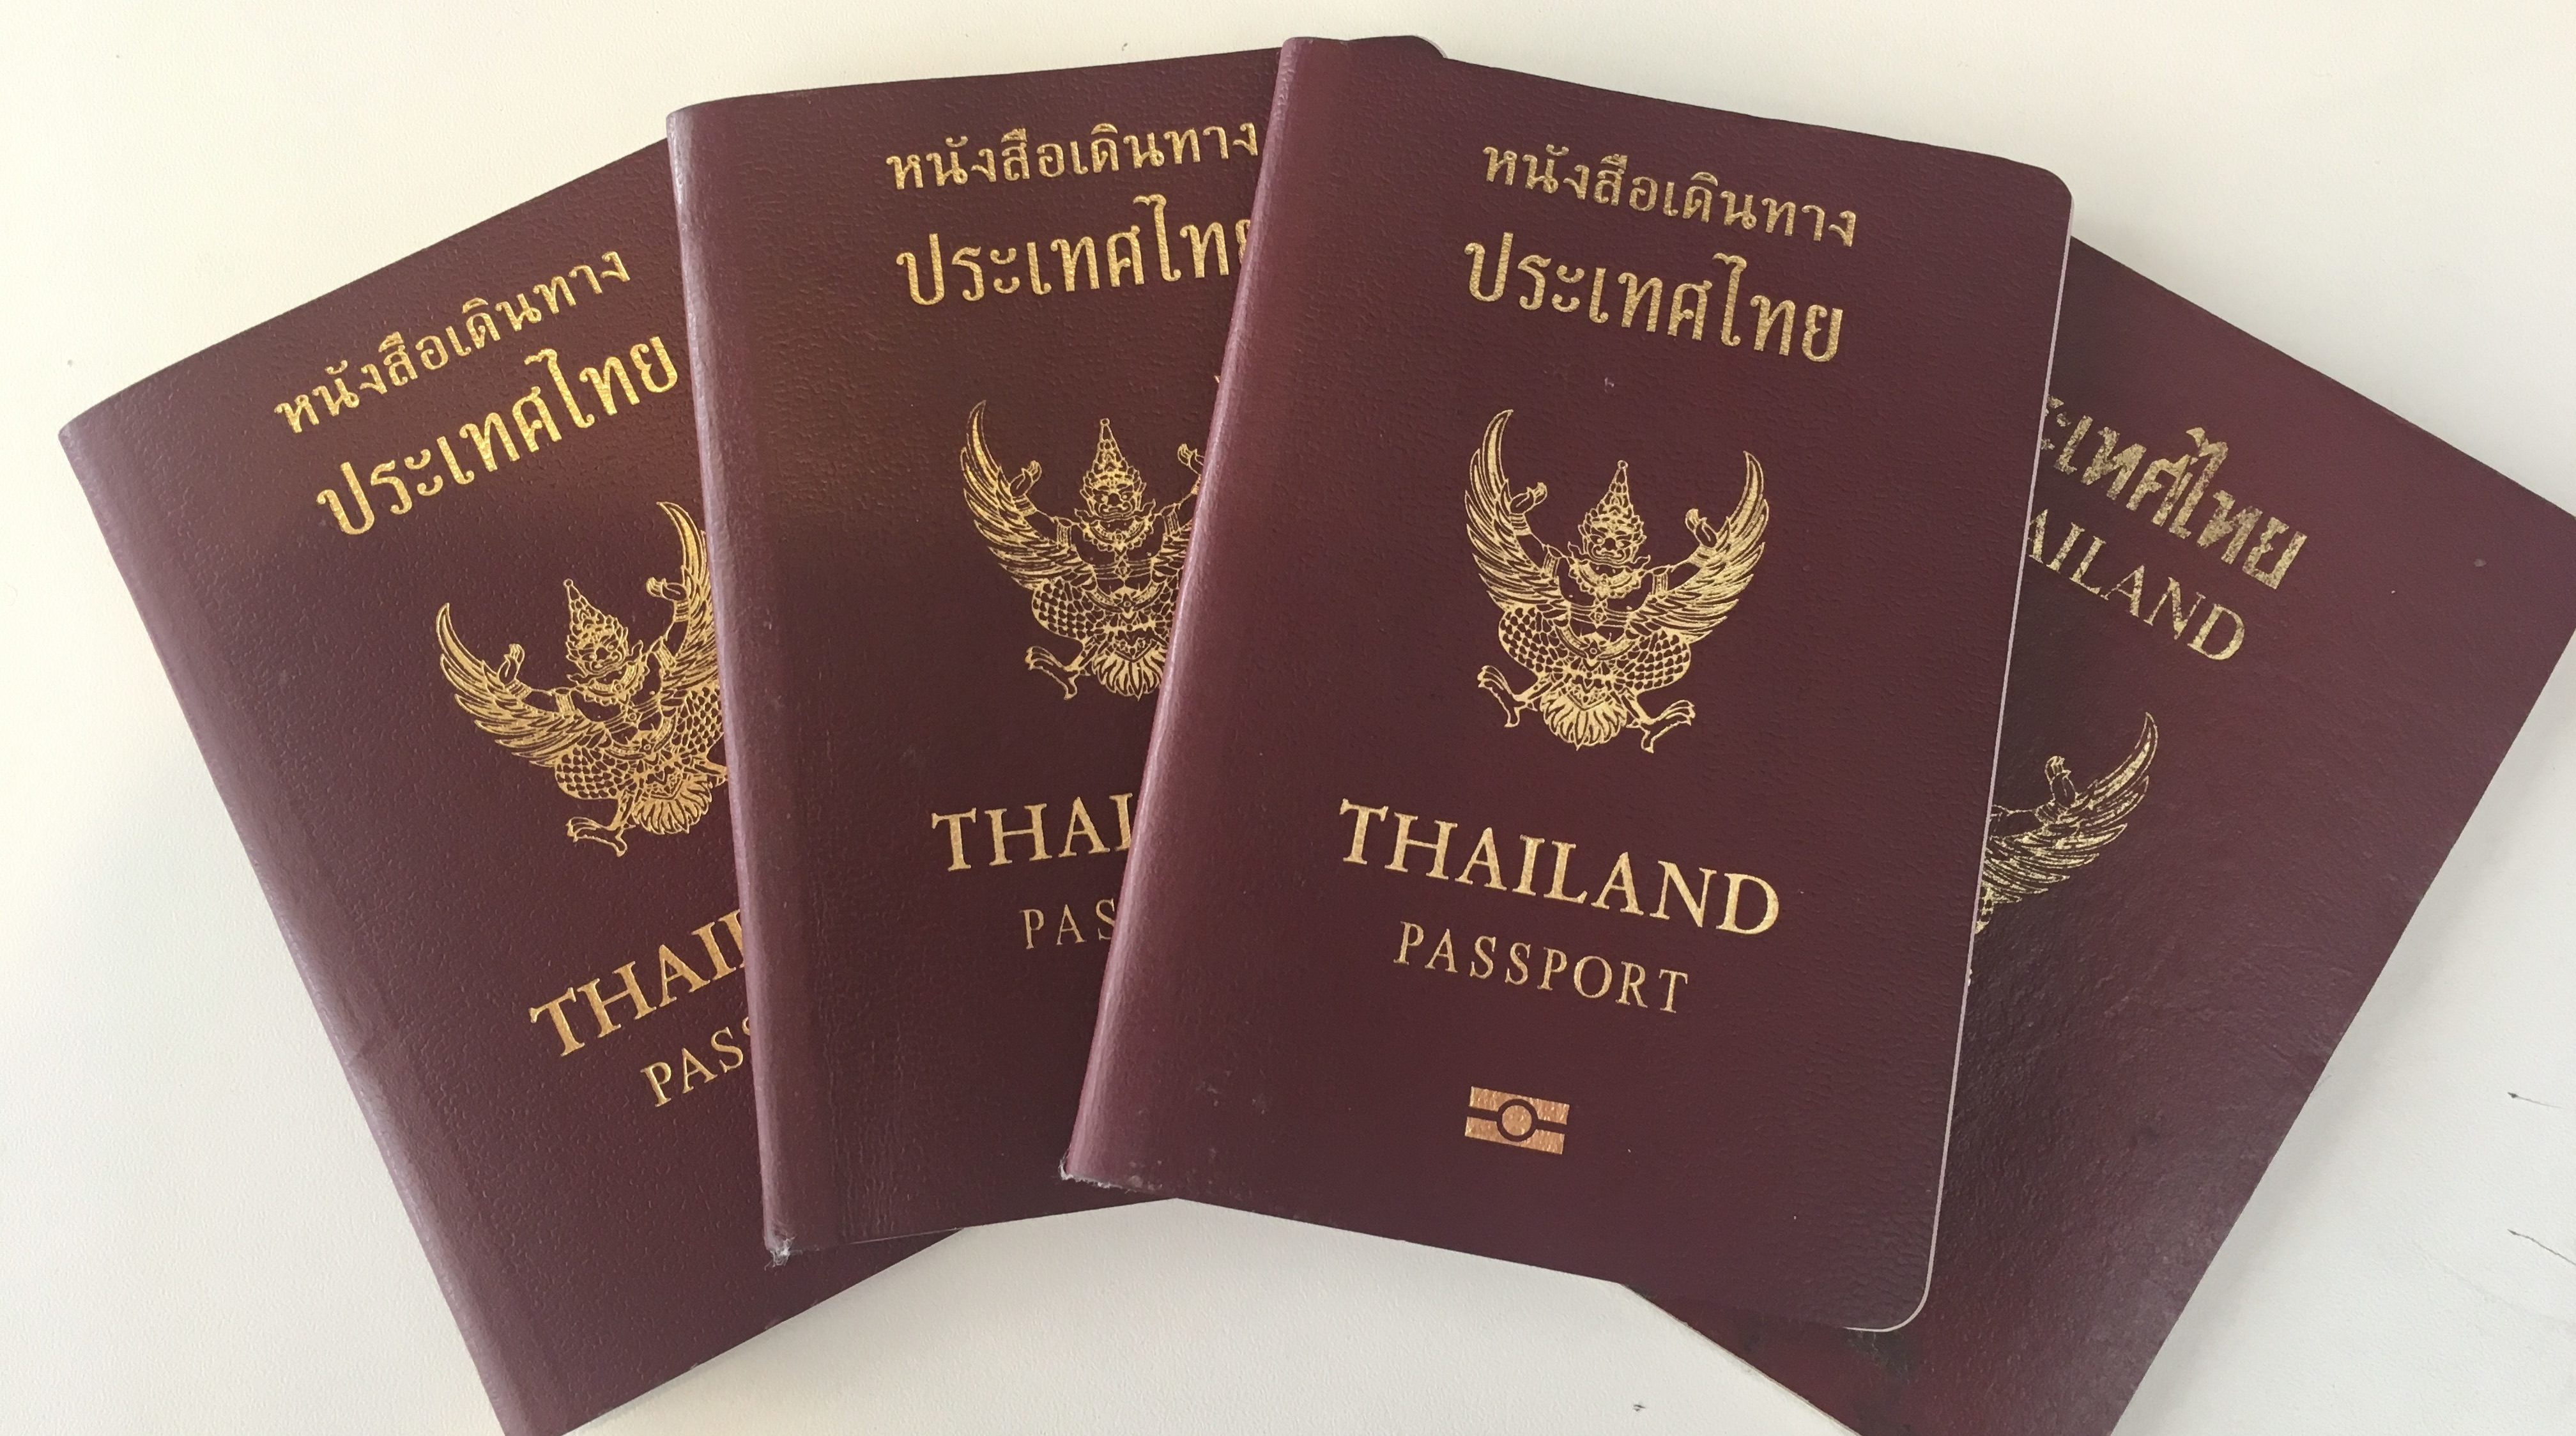 New Thai citizenship grants for August 2019